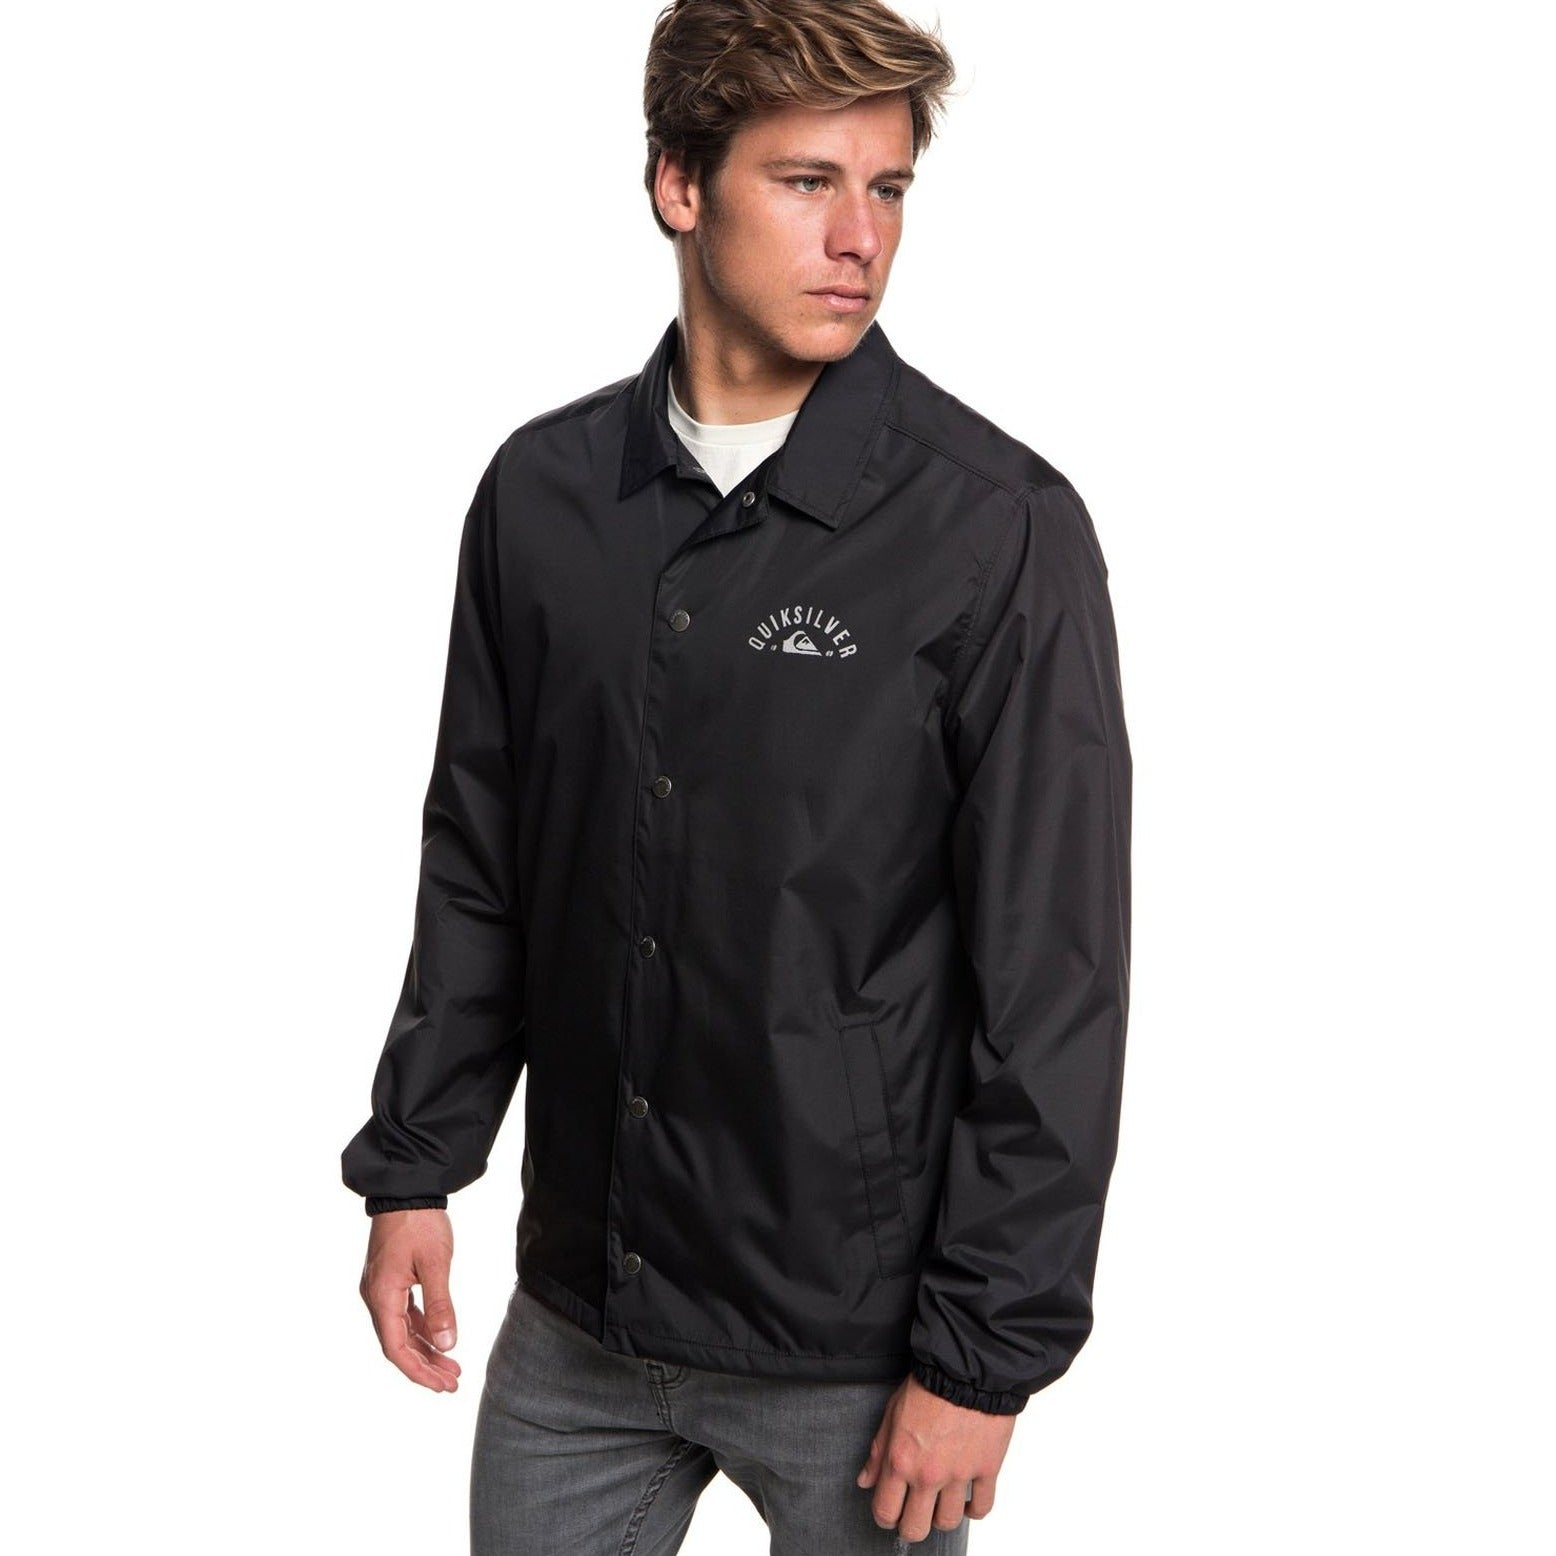 Quiksilver Ohama Break Men's Jacket